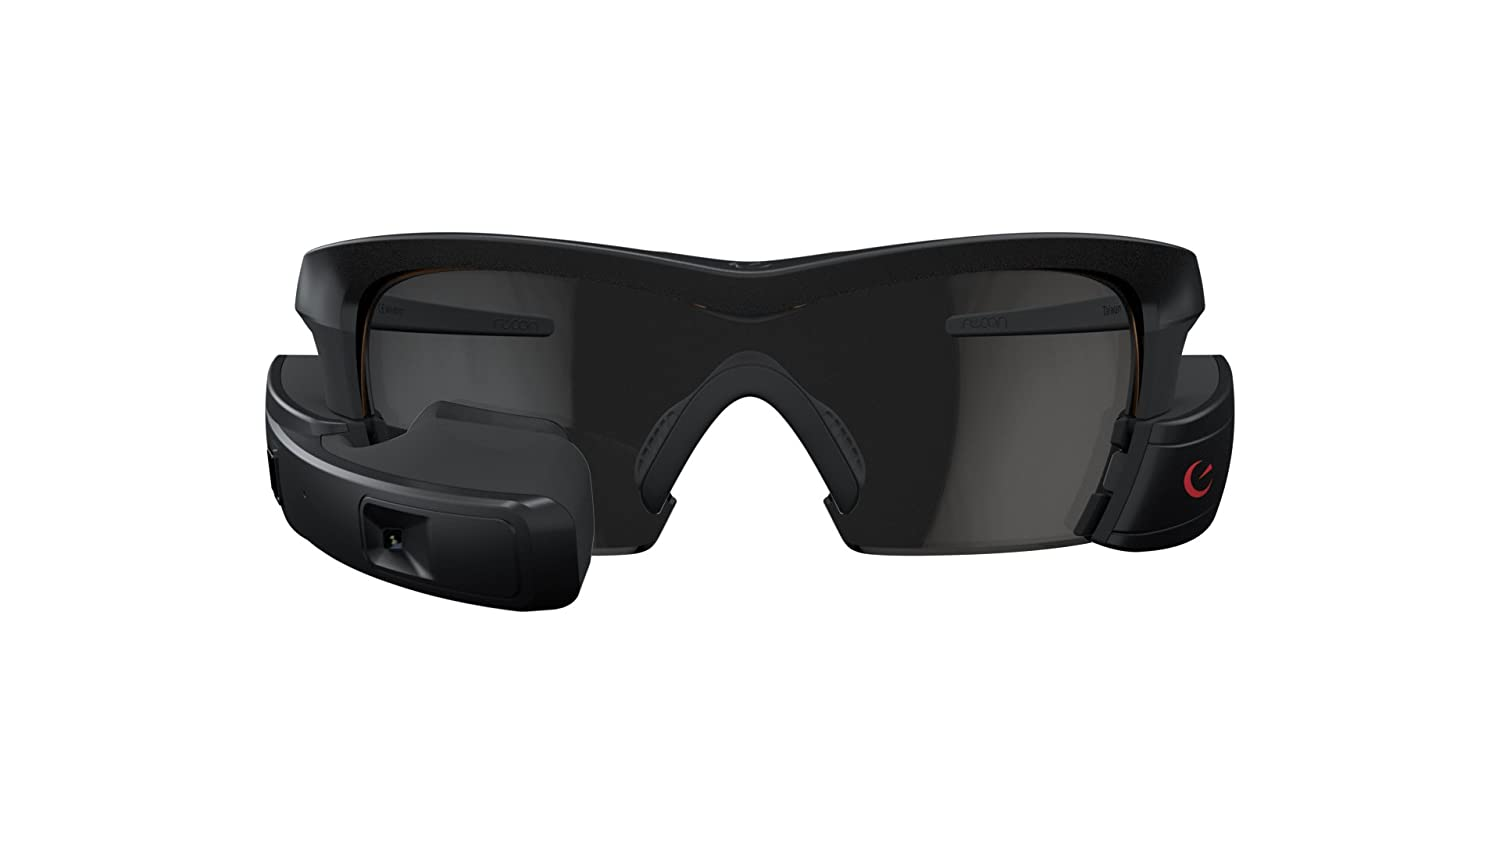 f1e052f019 Amazon.com  Recon Jet Smart Eyewear for Sports and Fitness - Black  Cell  Phones   Accessories